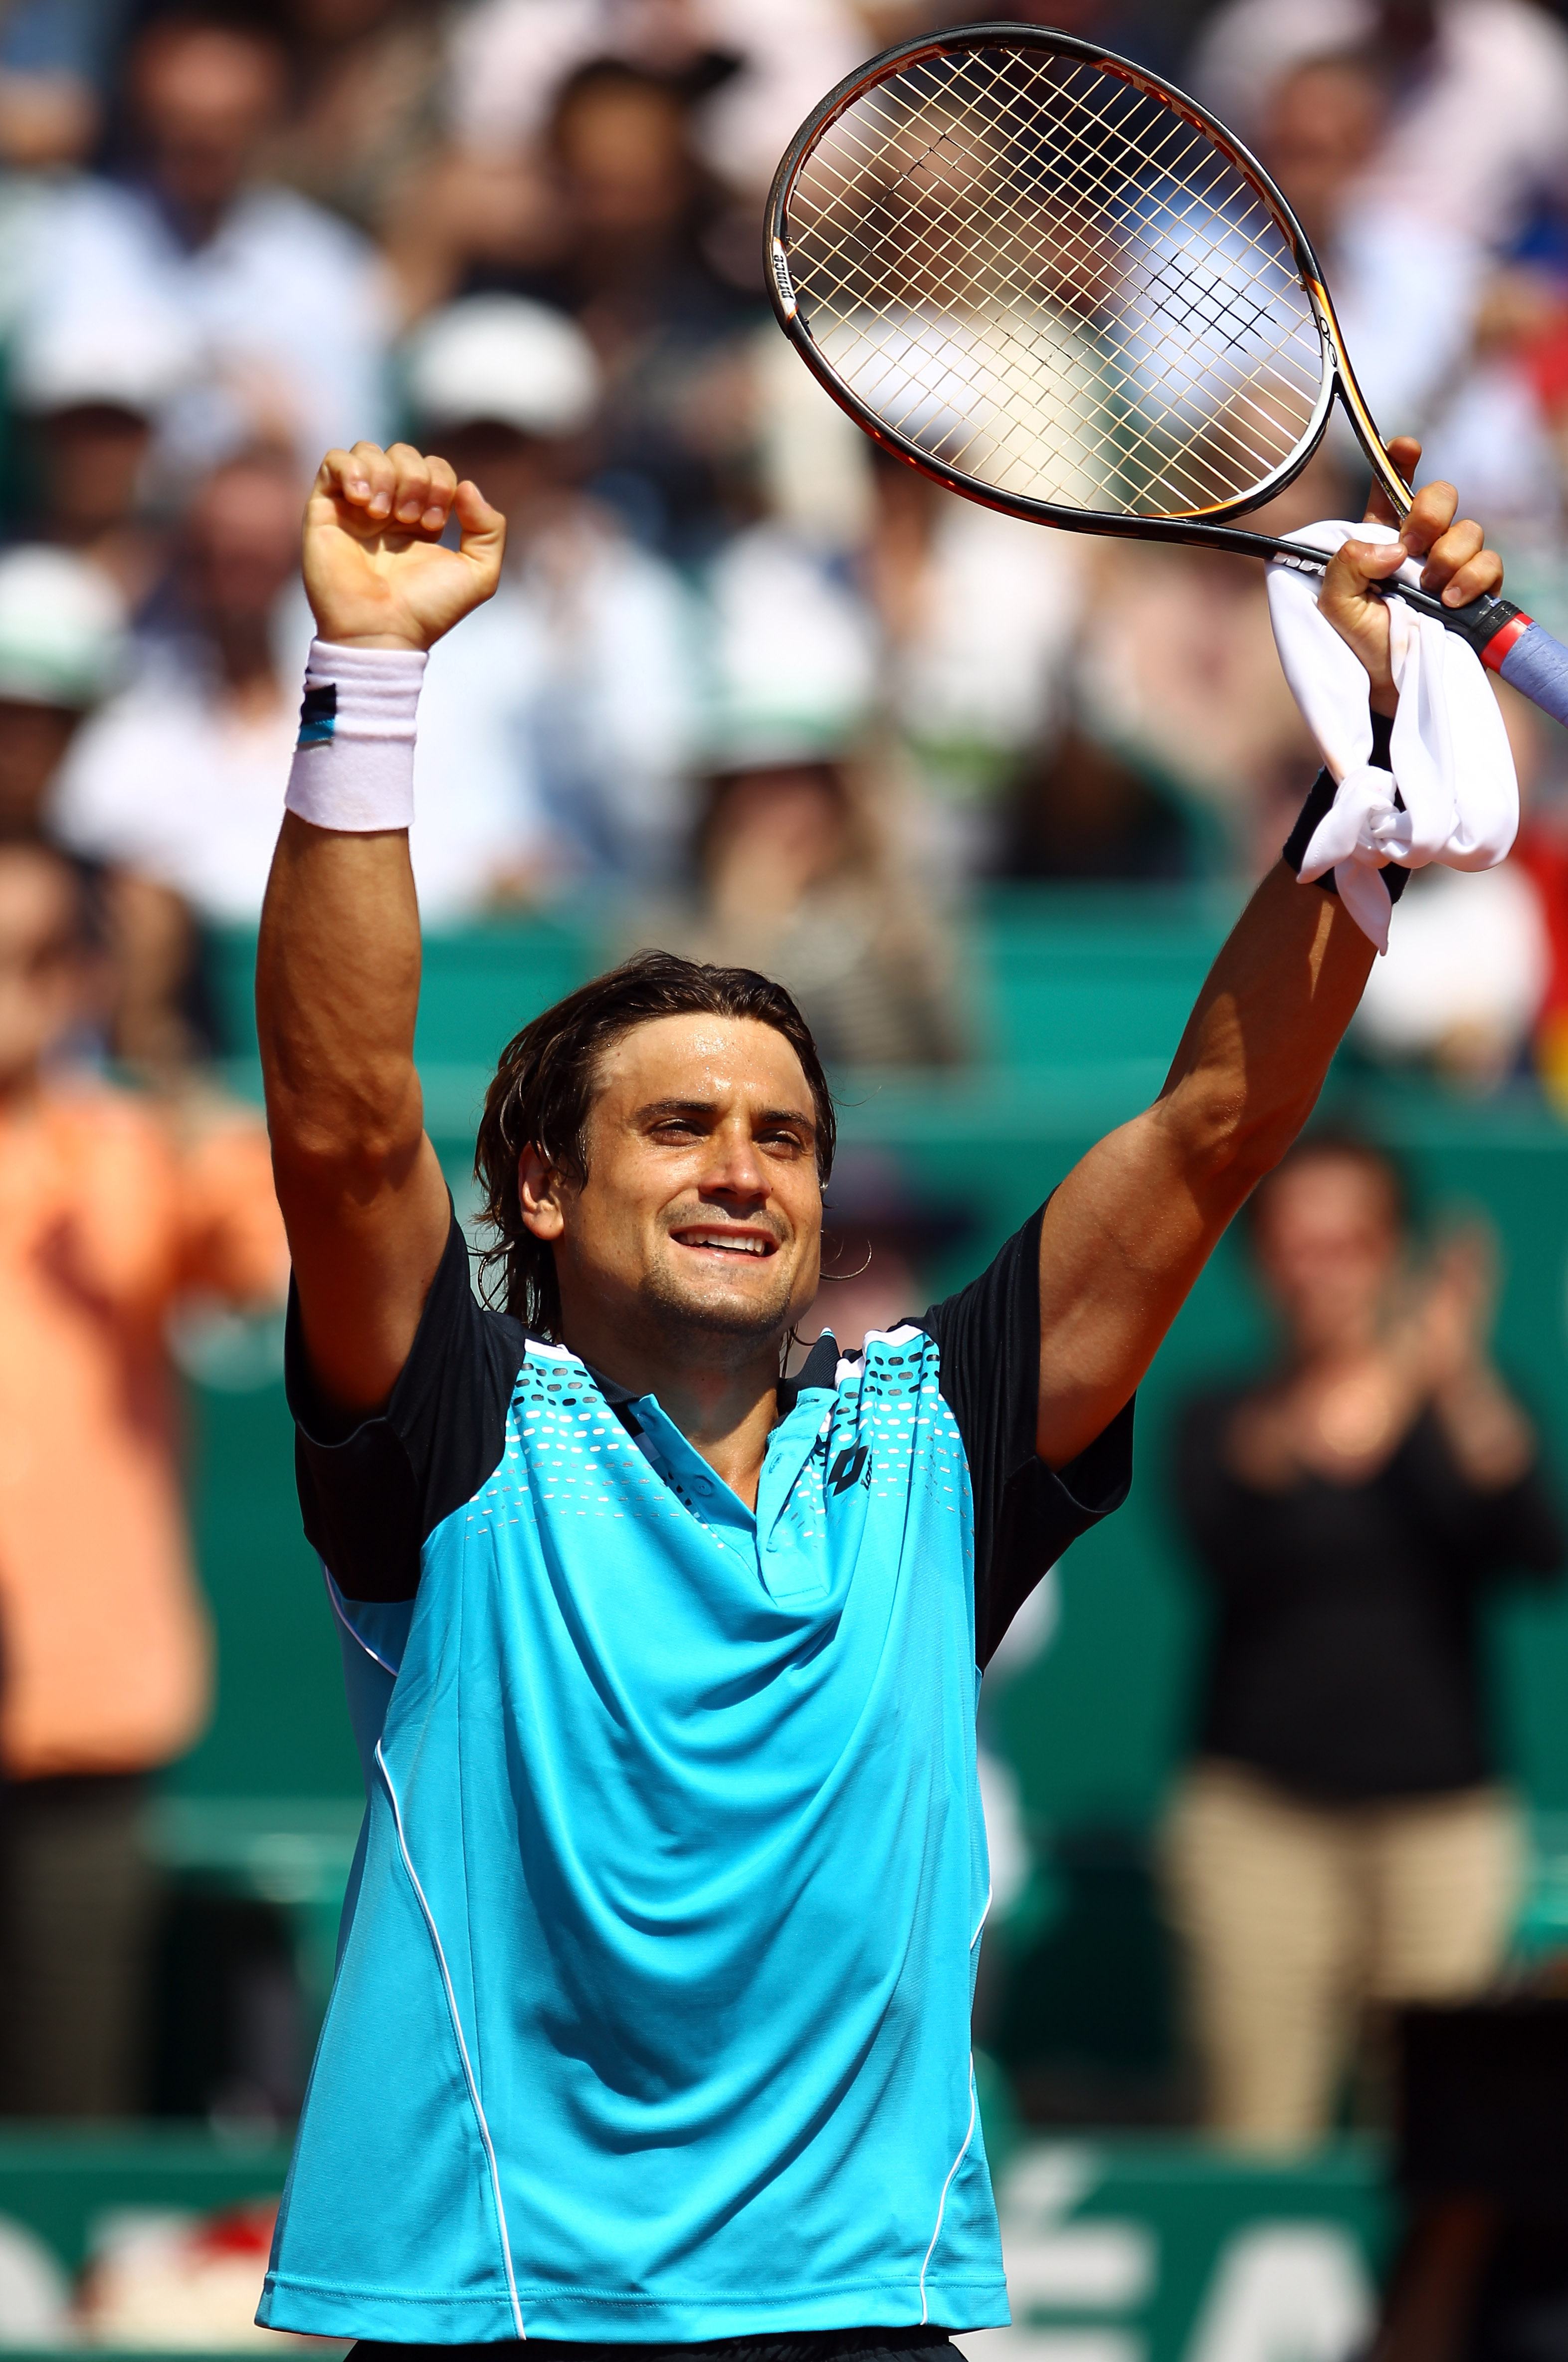 MONACO - APRIL 16:  David Ferrer of Spain celebrates defeating Jurgen Melzer of Austria during Day Seven of the ATP Masters Series Tennis at the Monte Carlo Country Club on April 16, 2011 in Monte Carlo, Monaco.  (Photo by Julian Finney/Getty Images)